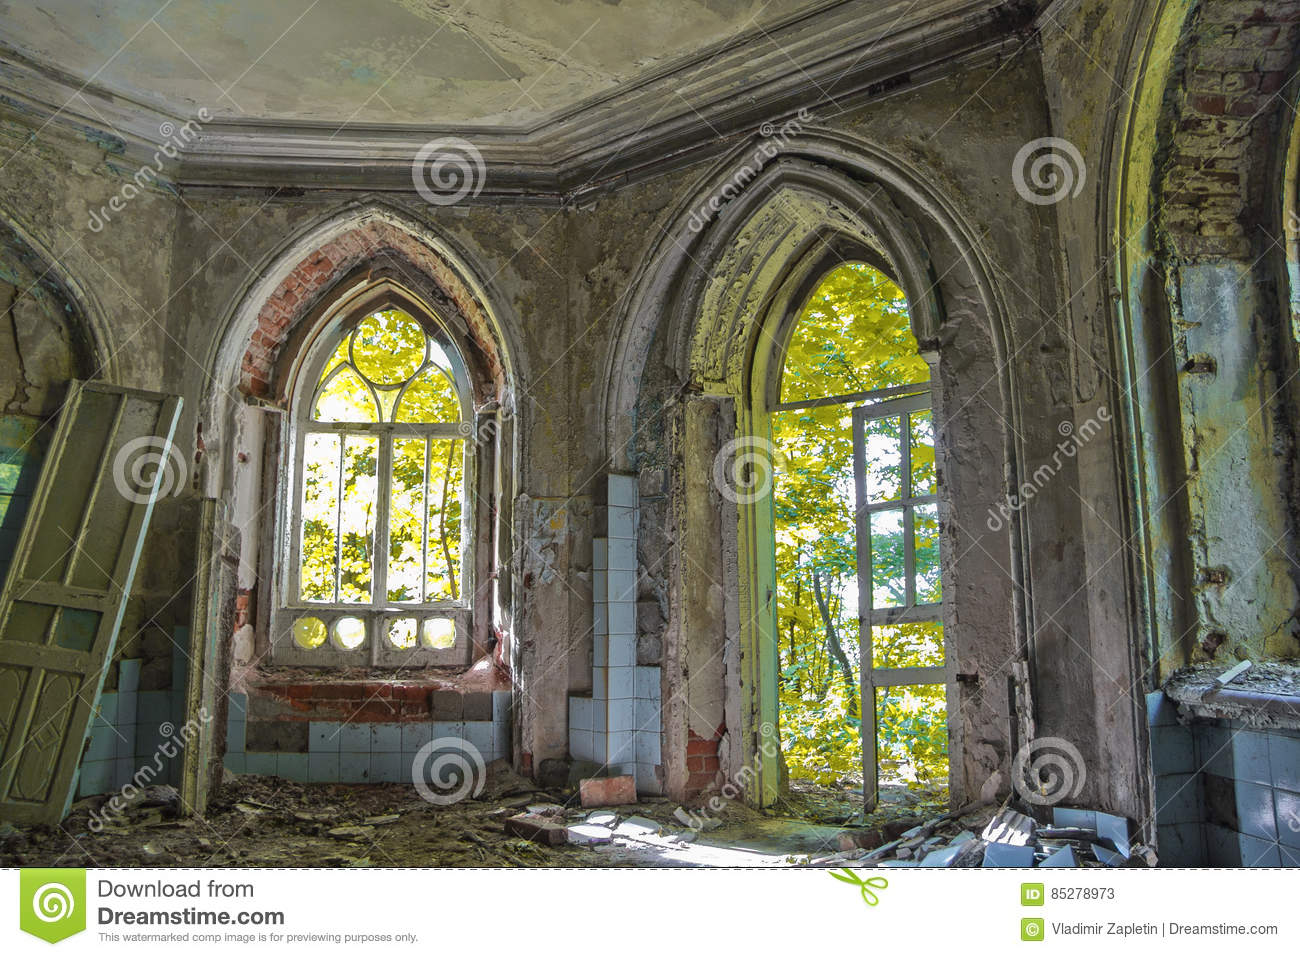 Old Rotten Doorway Of An Abandoned Mansion Khvostov In Gothic Style